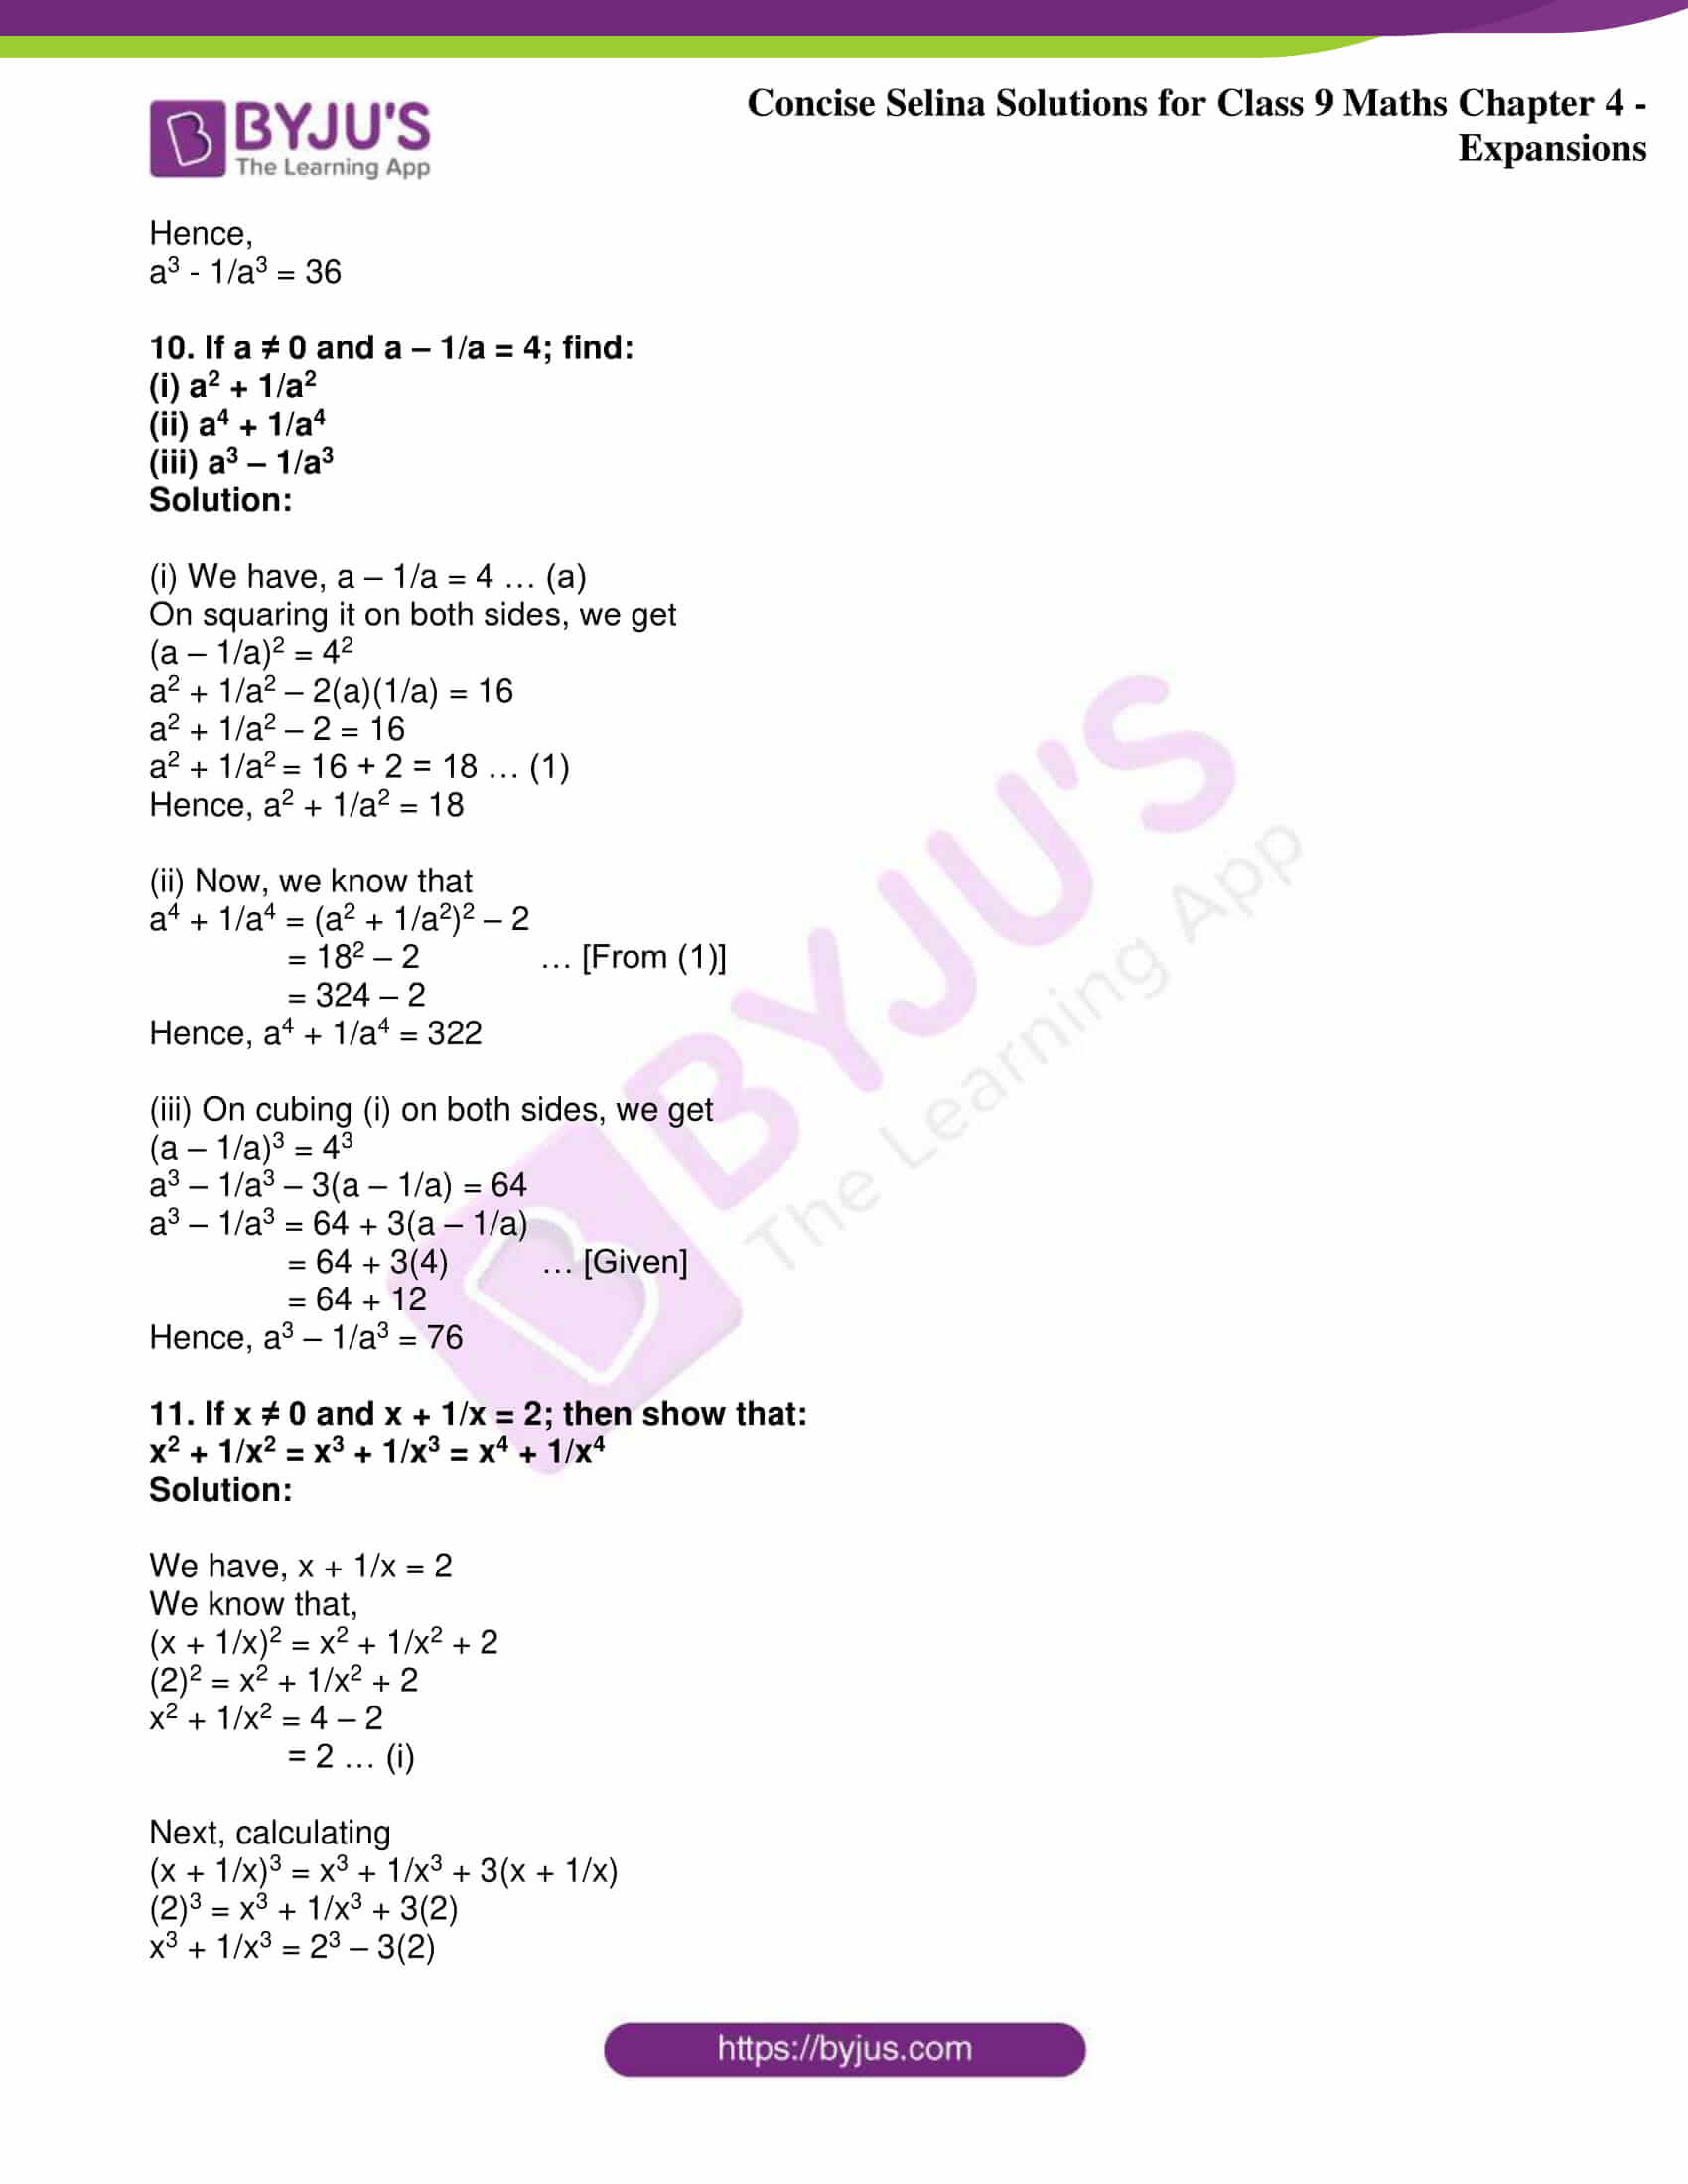 icse class 9 maths may10 selina solutions chapter 4 expansions 14